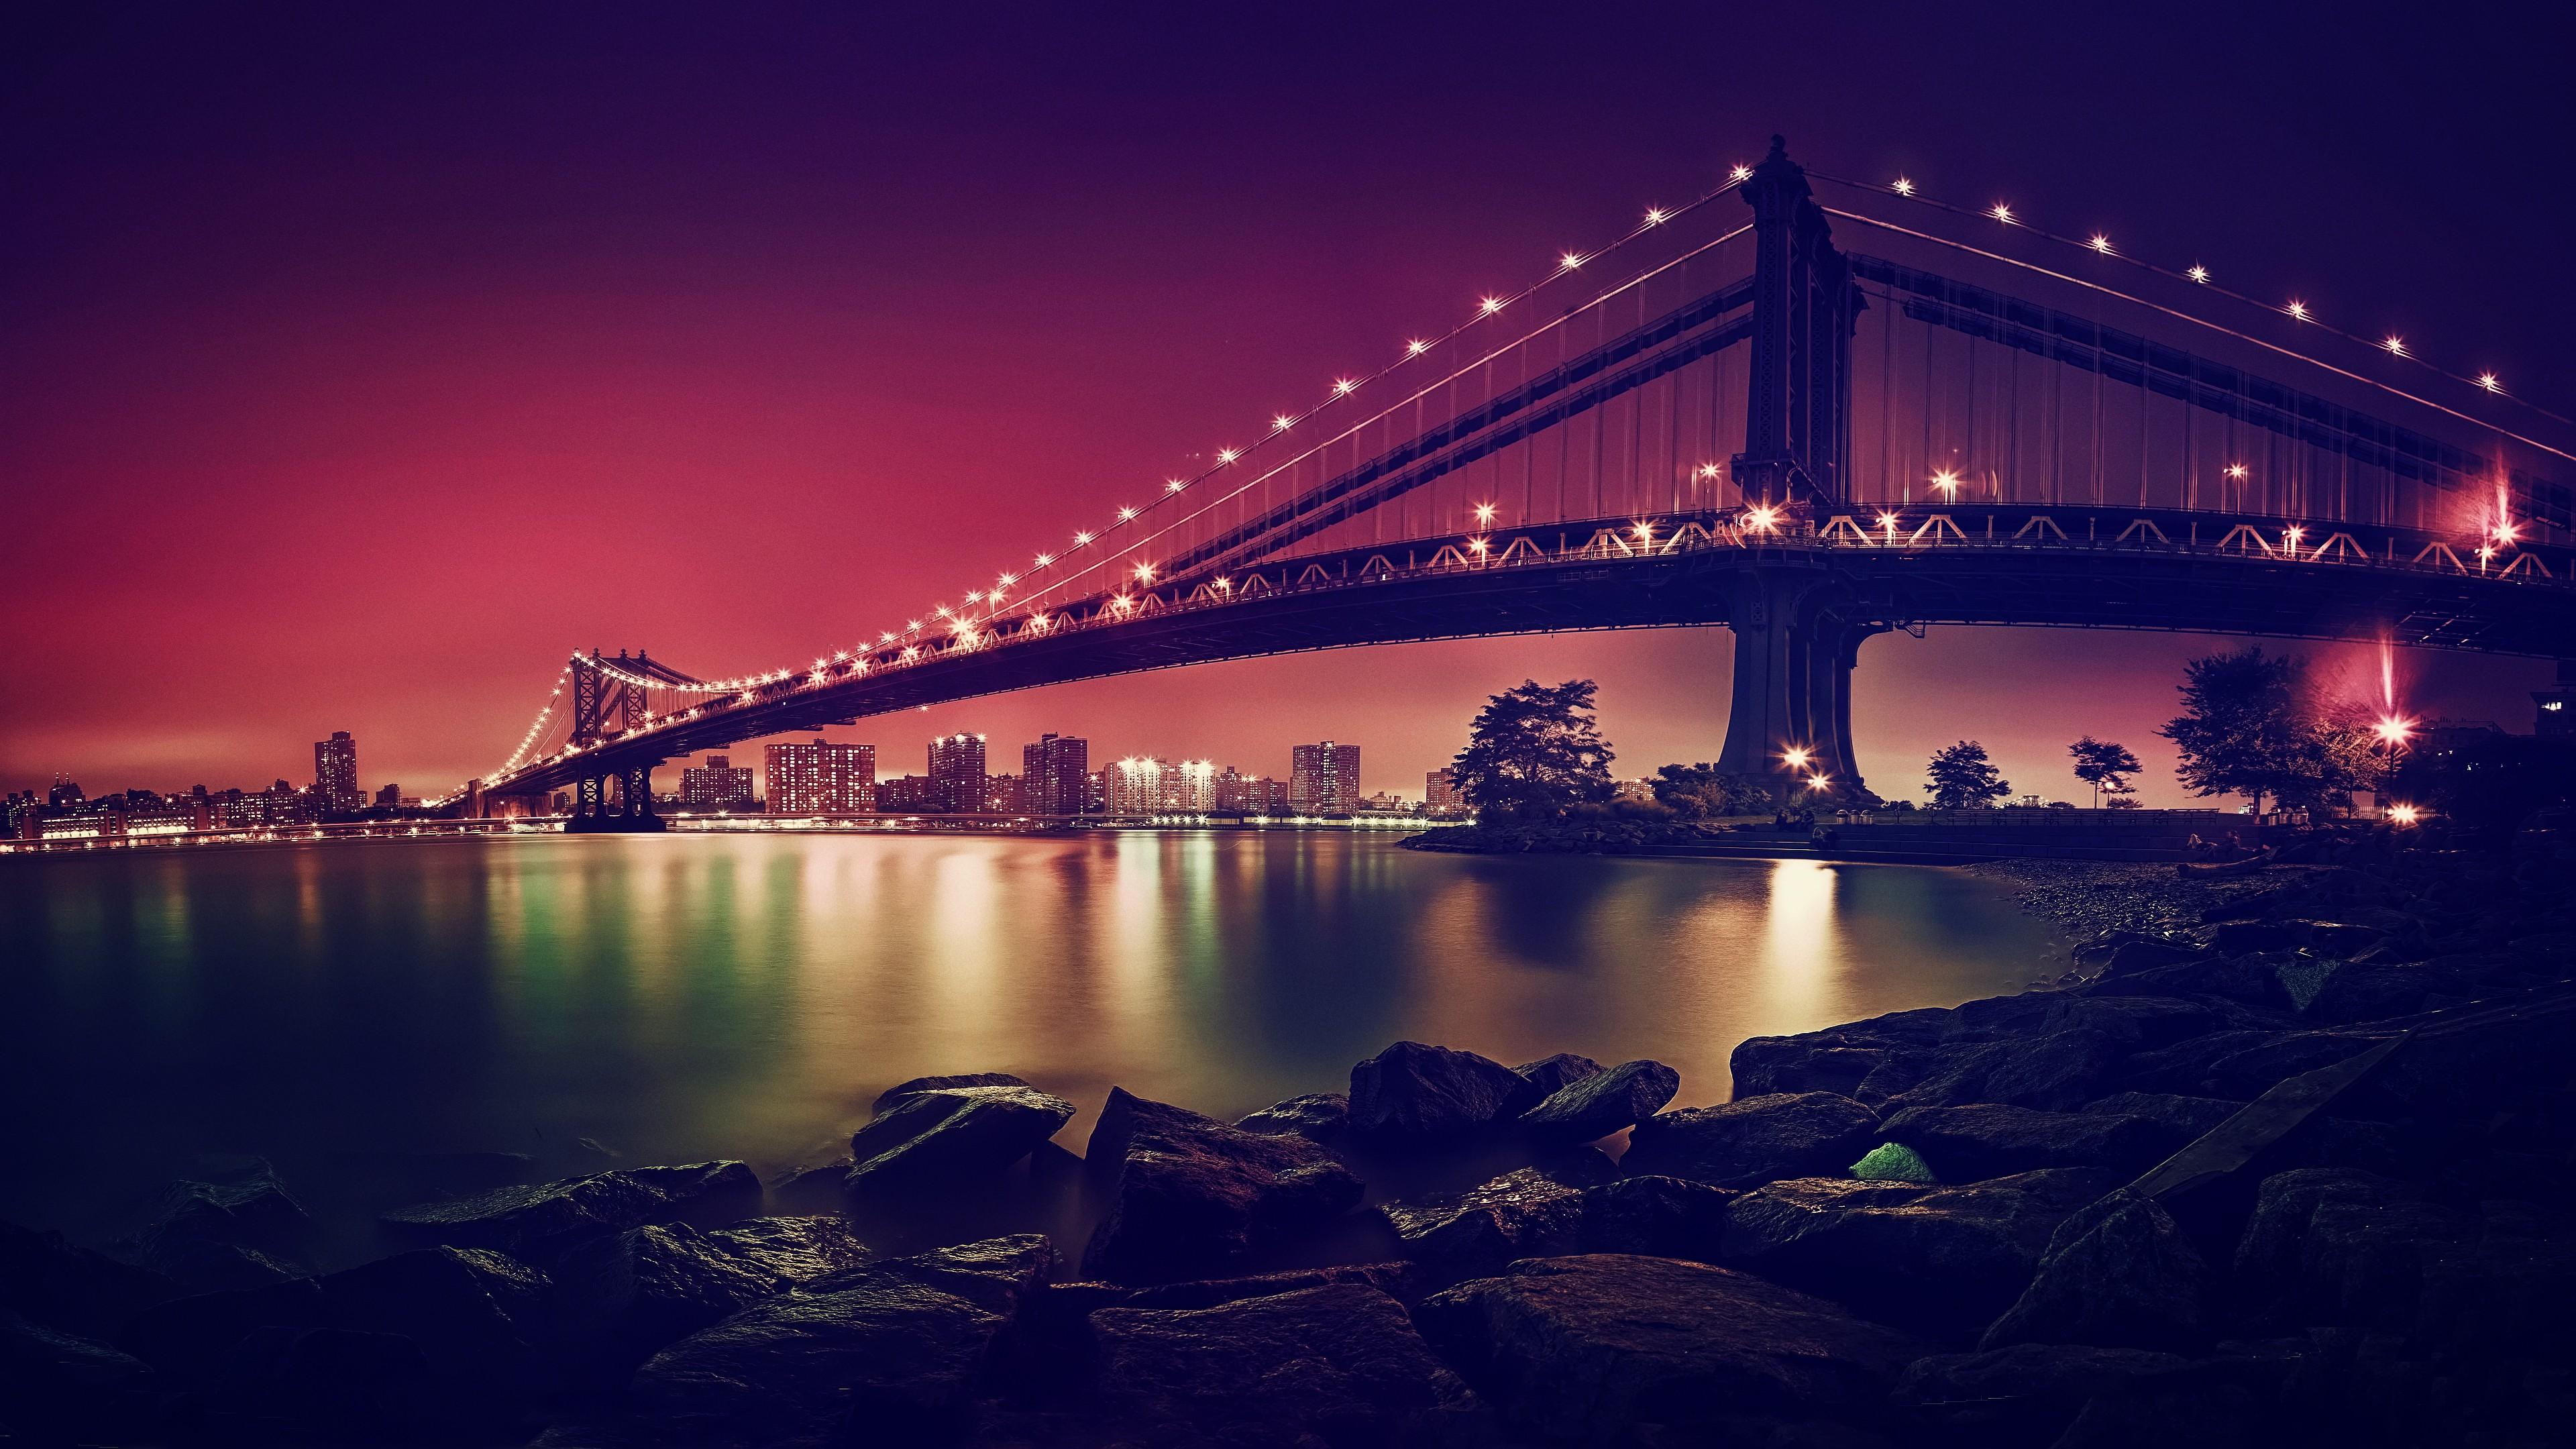 Ponte De Manhattan 4k Ultra Papel De Parede HD